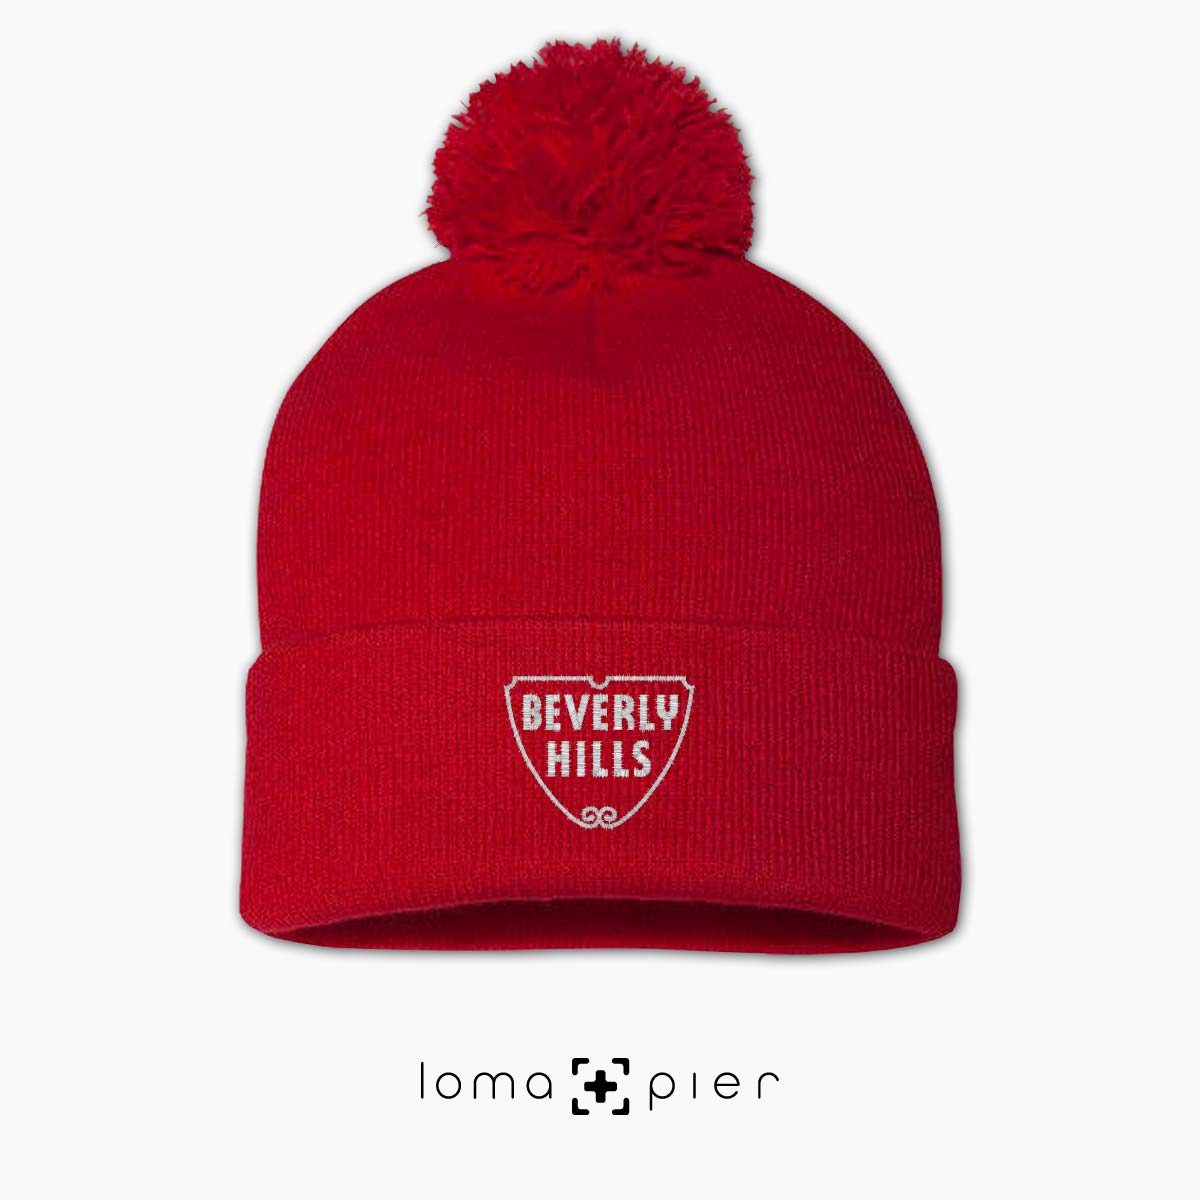 BEVERLY HILLS typography embroidered on a red pom pom beanie with white thread by loma+pier hat store